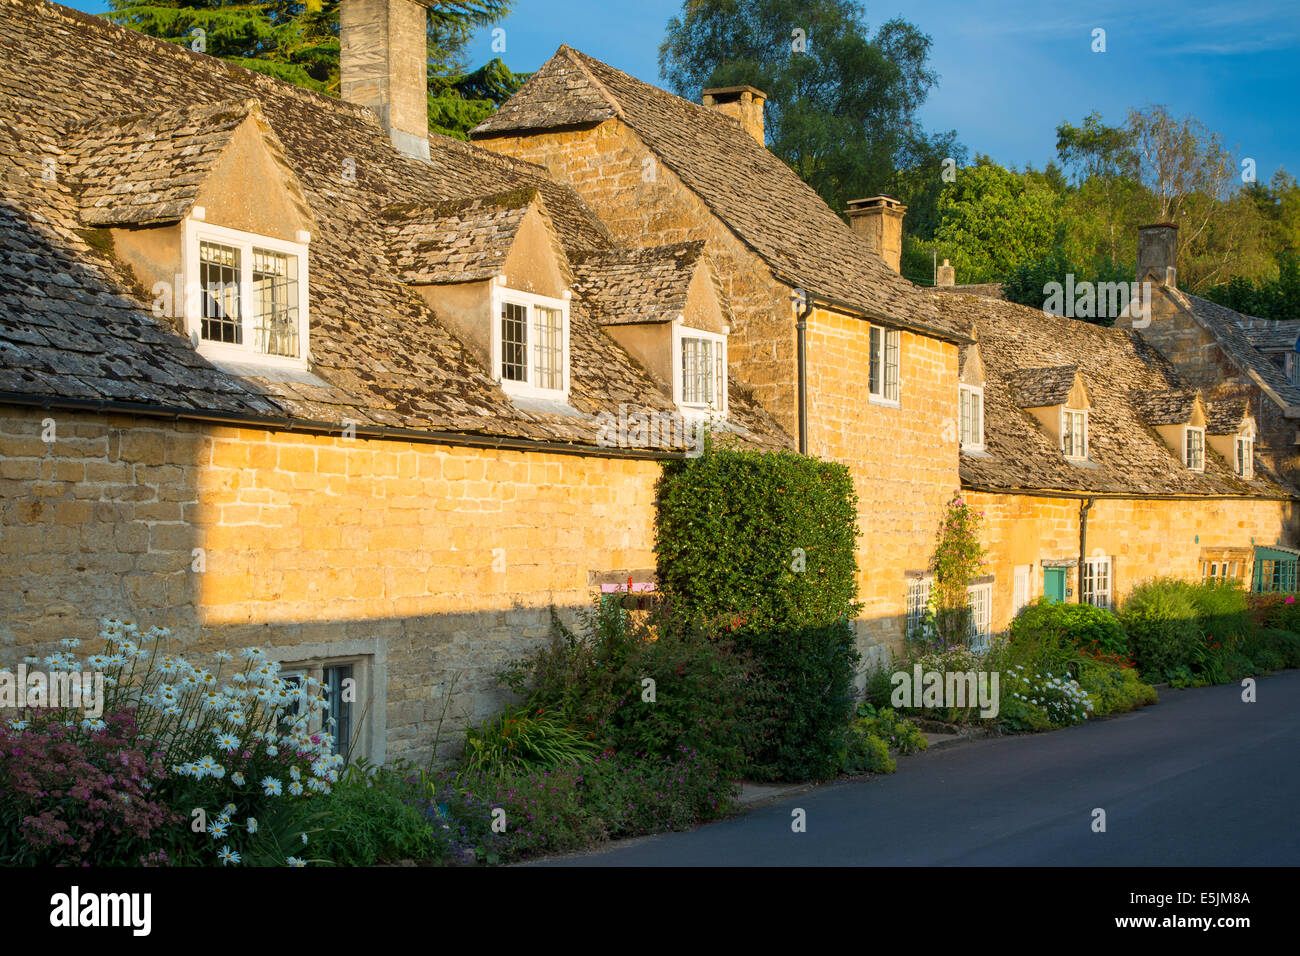 Row of attached cottages in Snowshill, the Cotswolds, Gloucestershire, England - Stock Image